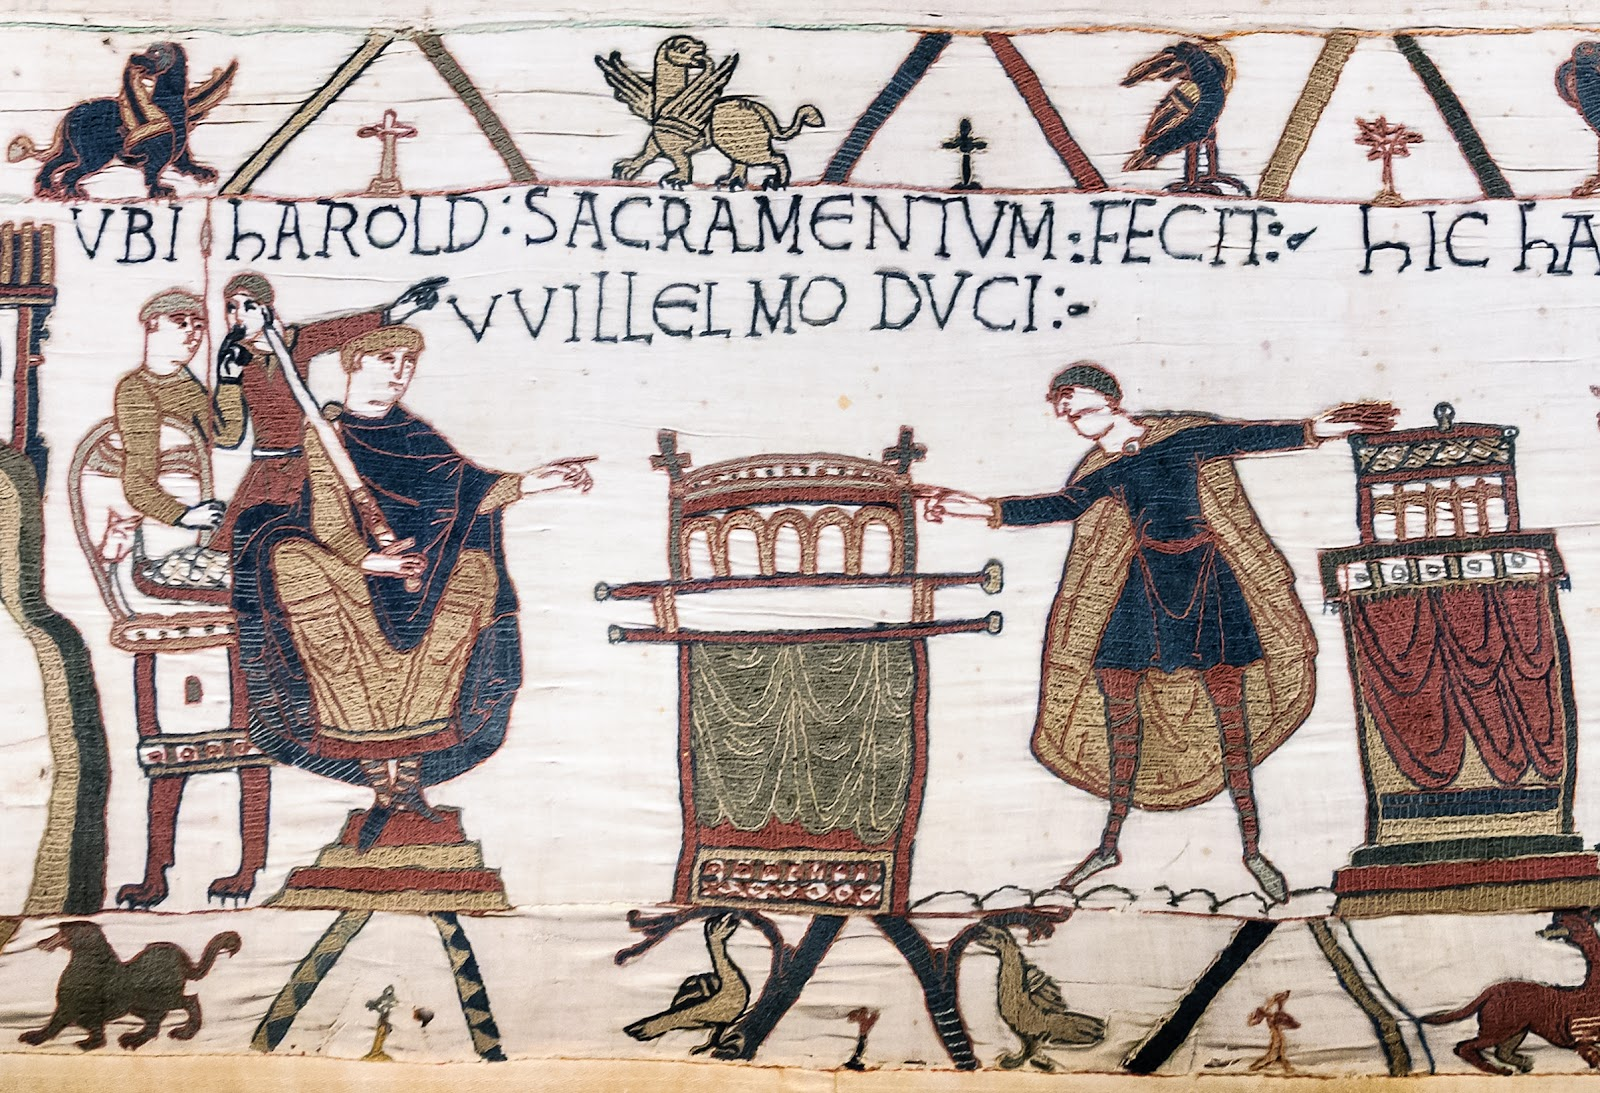 Image from the Bayeux Tapestry depicting the Norman conquest of England in which one ruler pledges fealty to another.